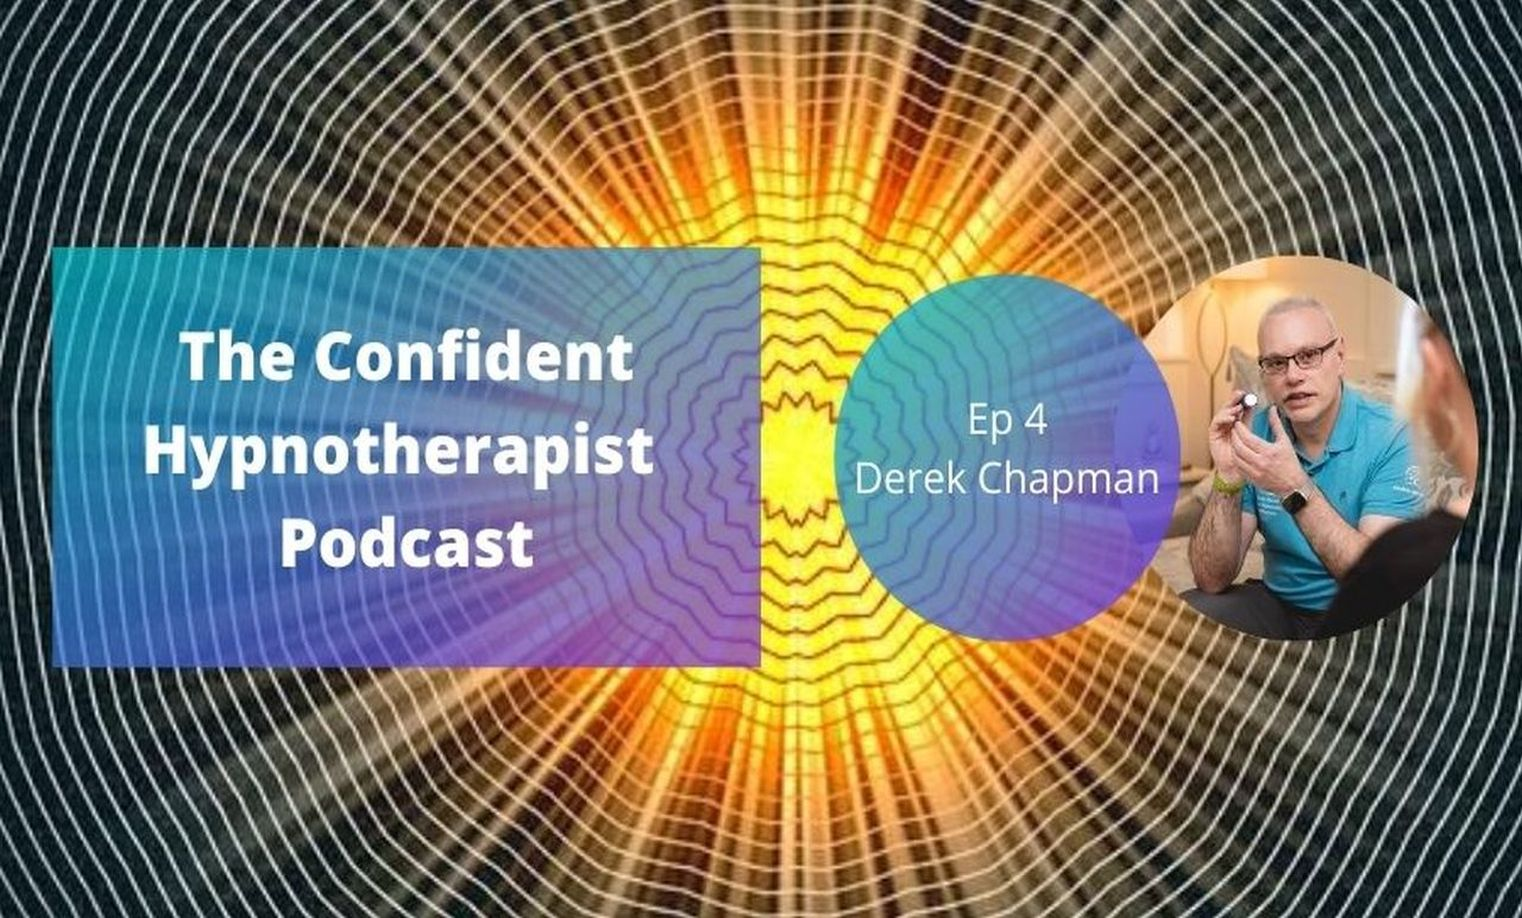 Derek Chapman Russian Doll Technique The Confident Hypnotherapist Podcast Release Hypnosis Counselling Melbourne Online